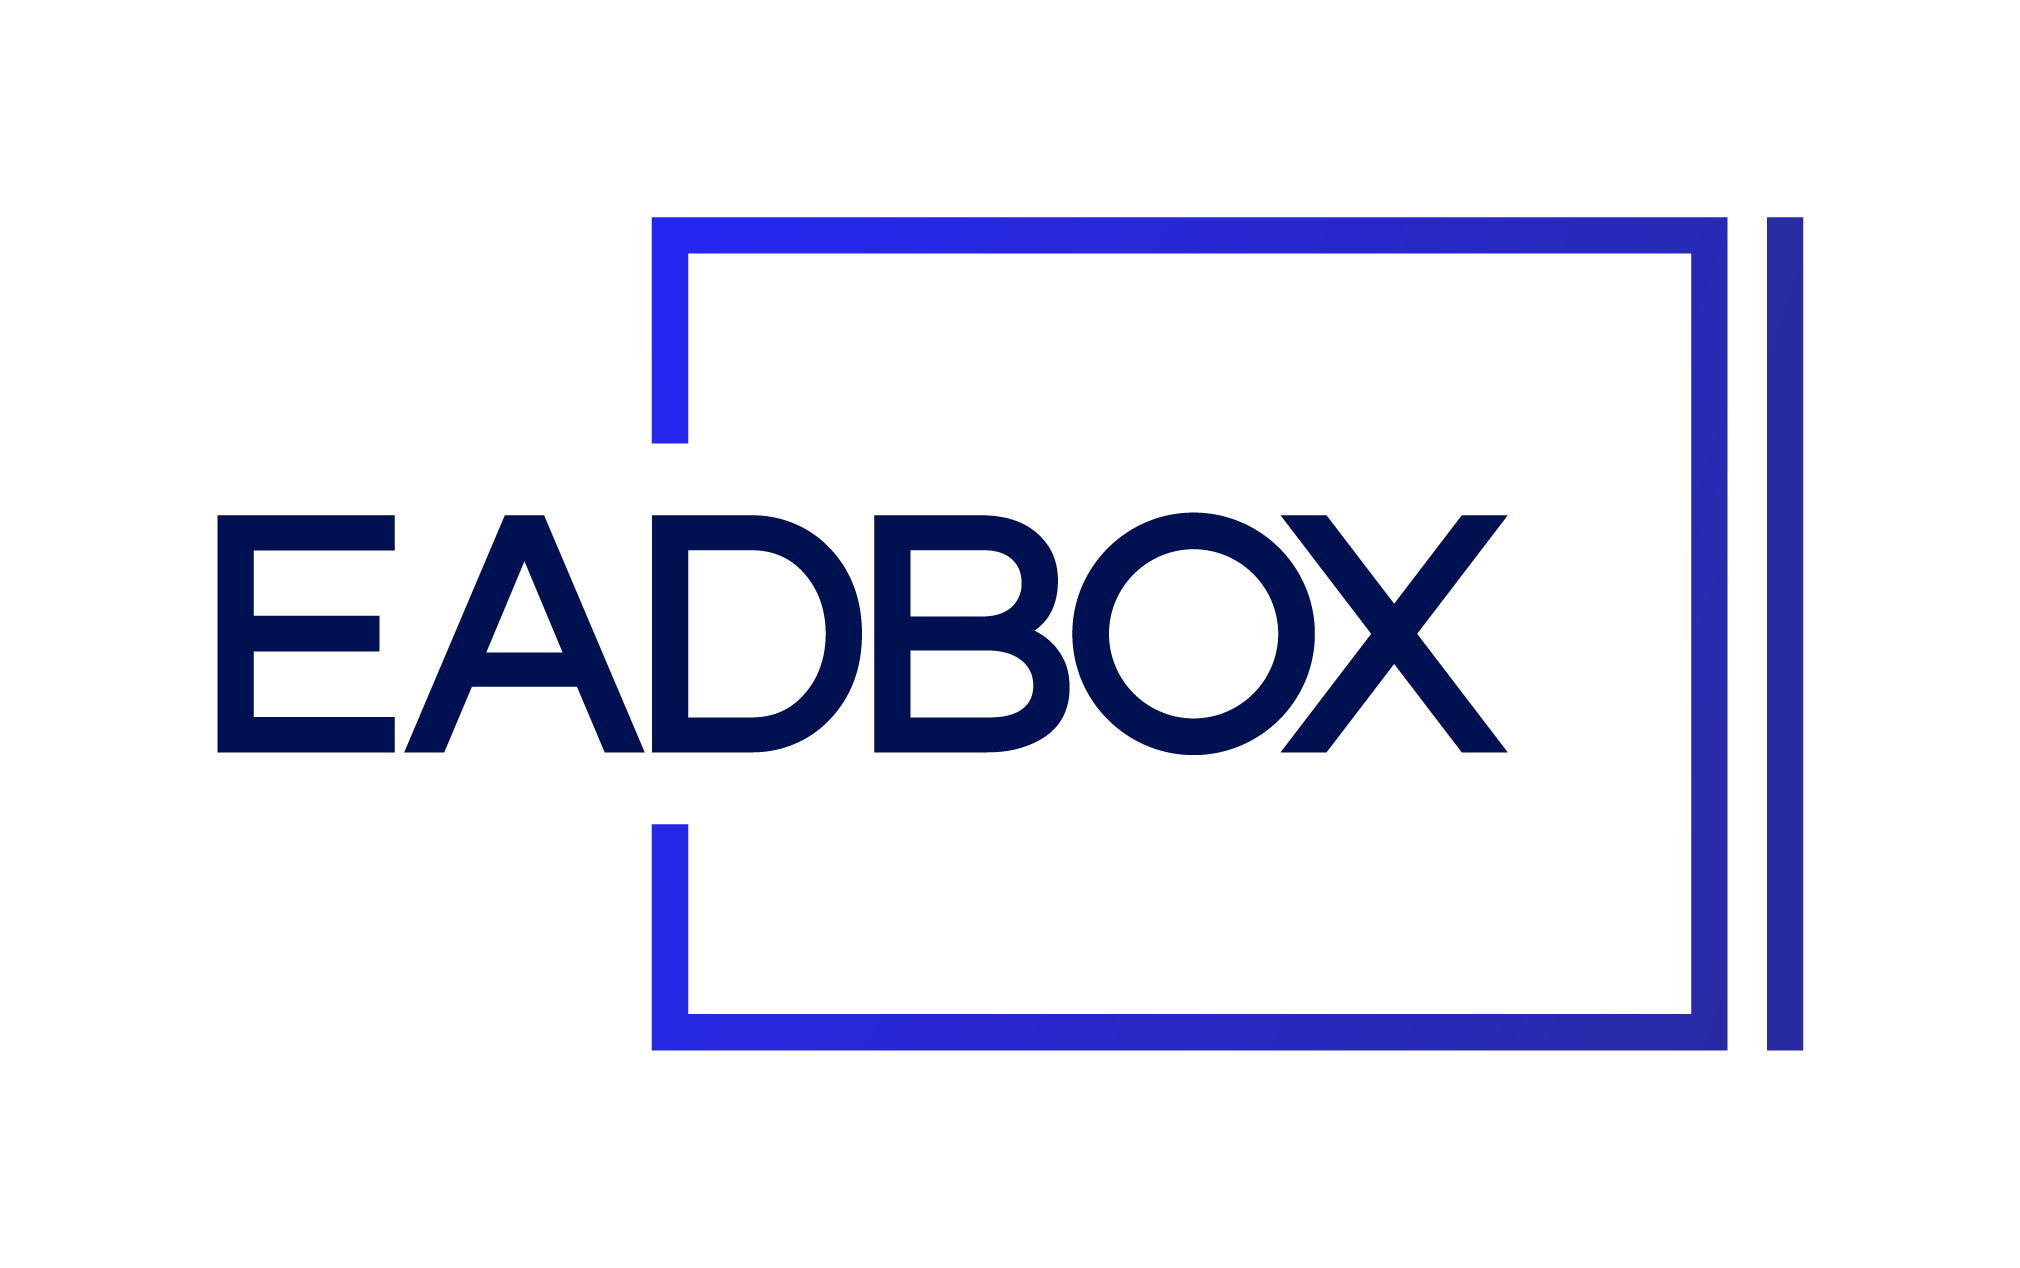 Plataforma LMS Eadbox. Crie cursos online, venda cursos online e tenha sua própria loja de cursos.